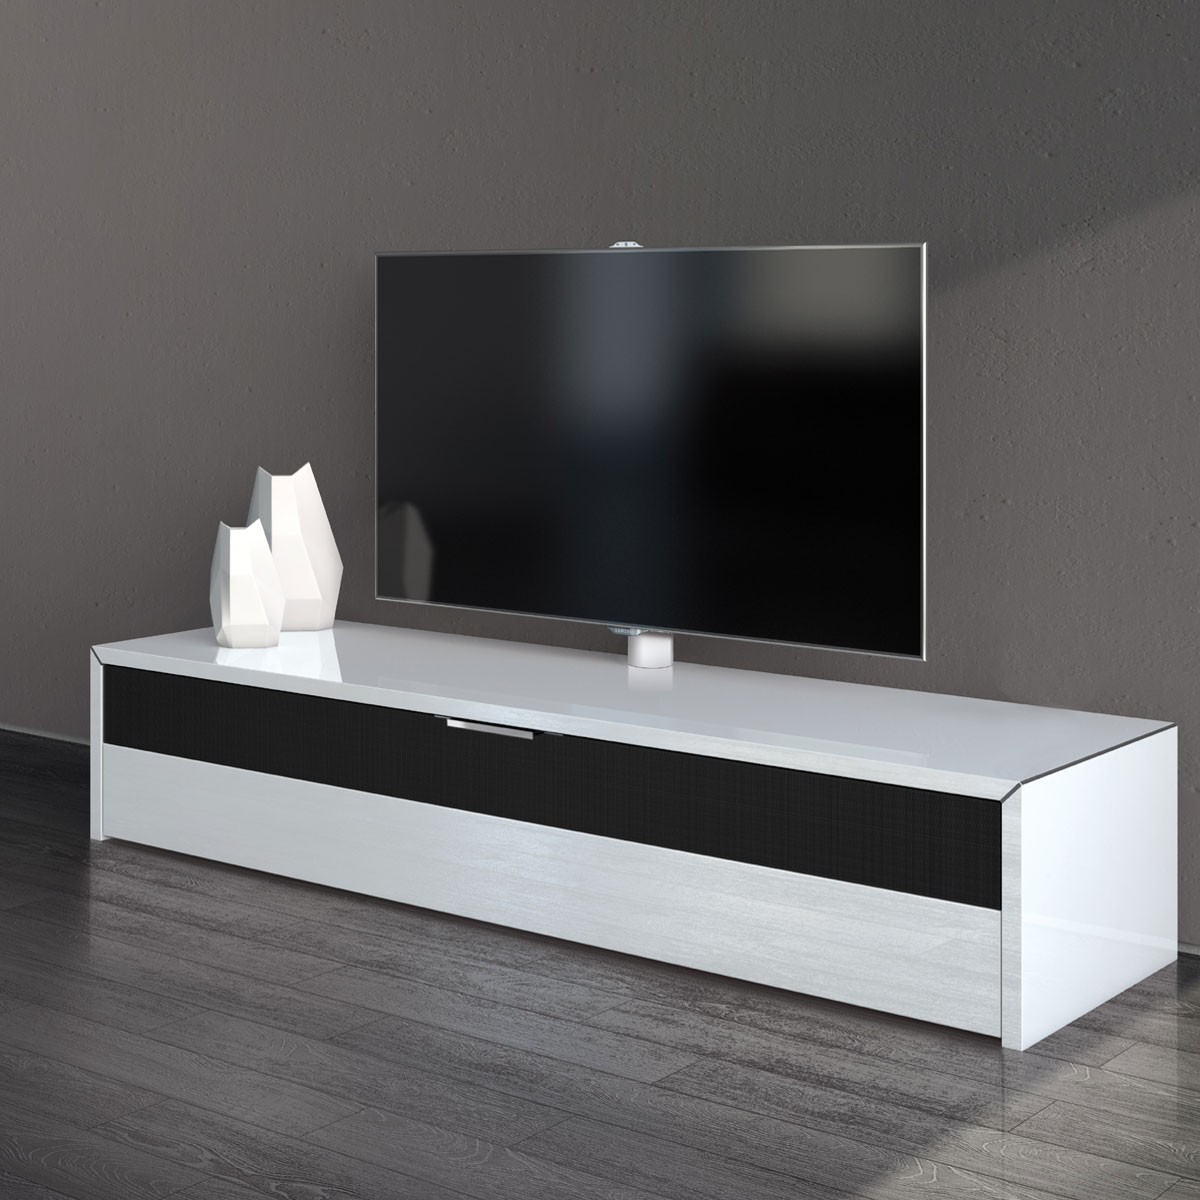 mediam bel archive tv m bel und hifi m bel guide. Black Bedroom Furniture Sets. Home Design Ideas